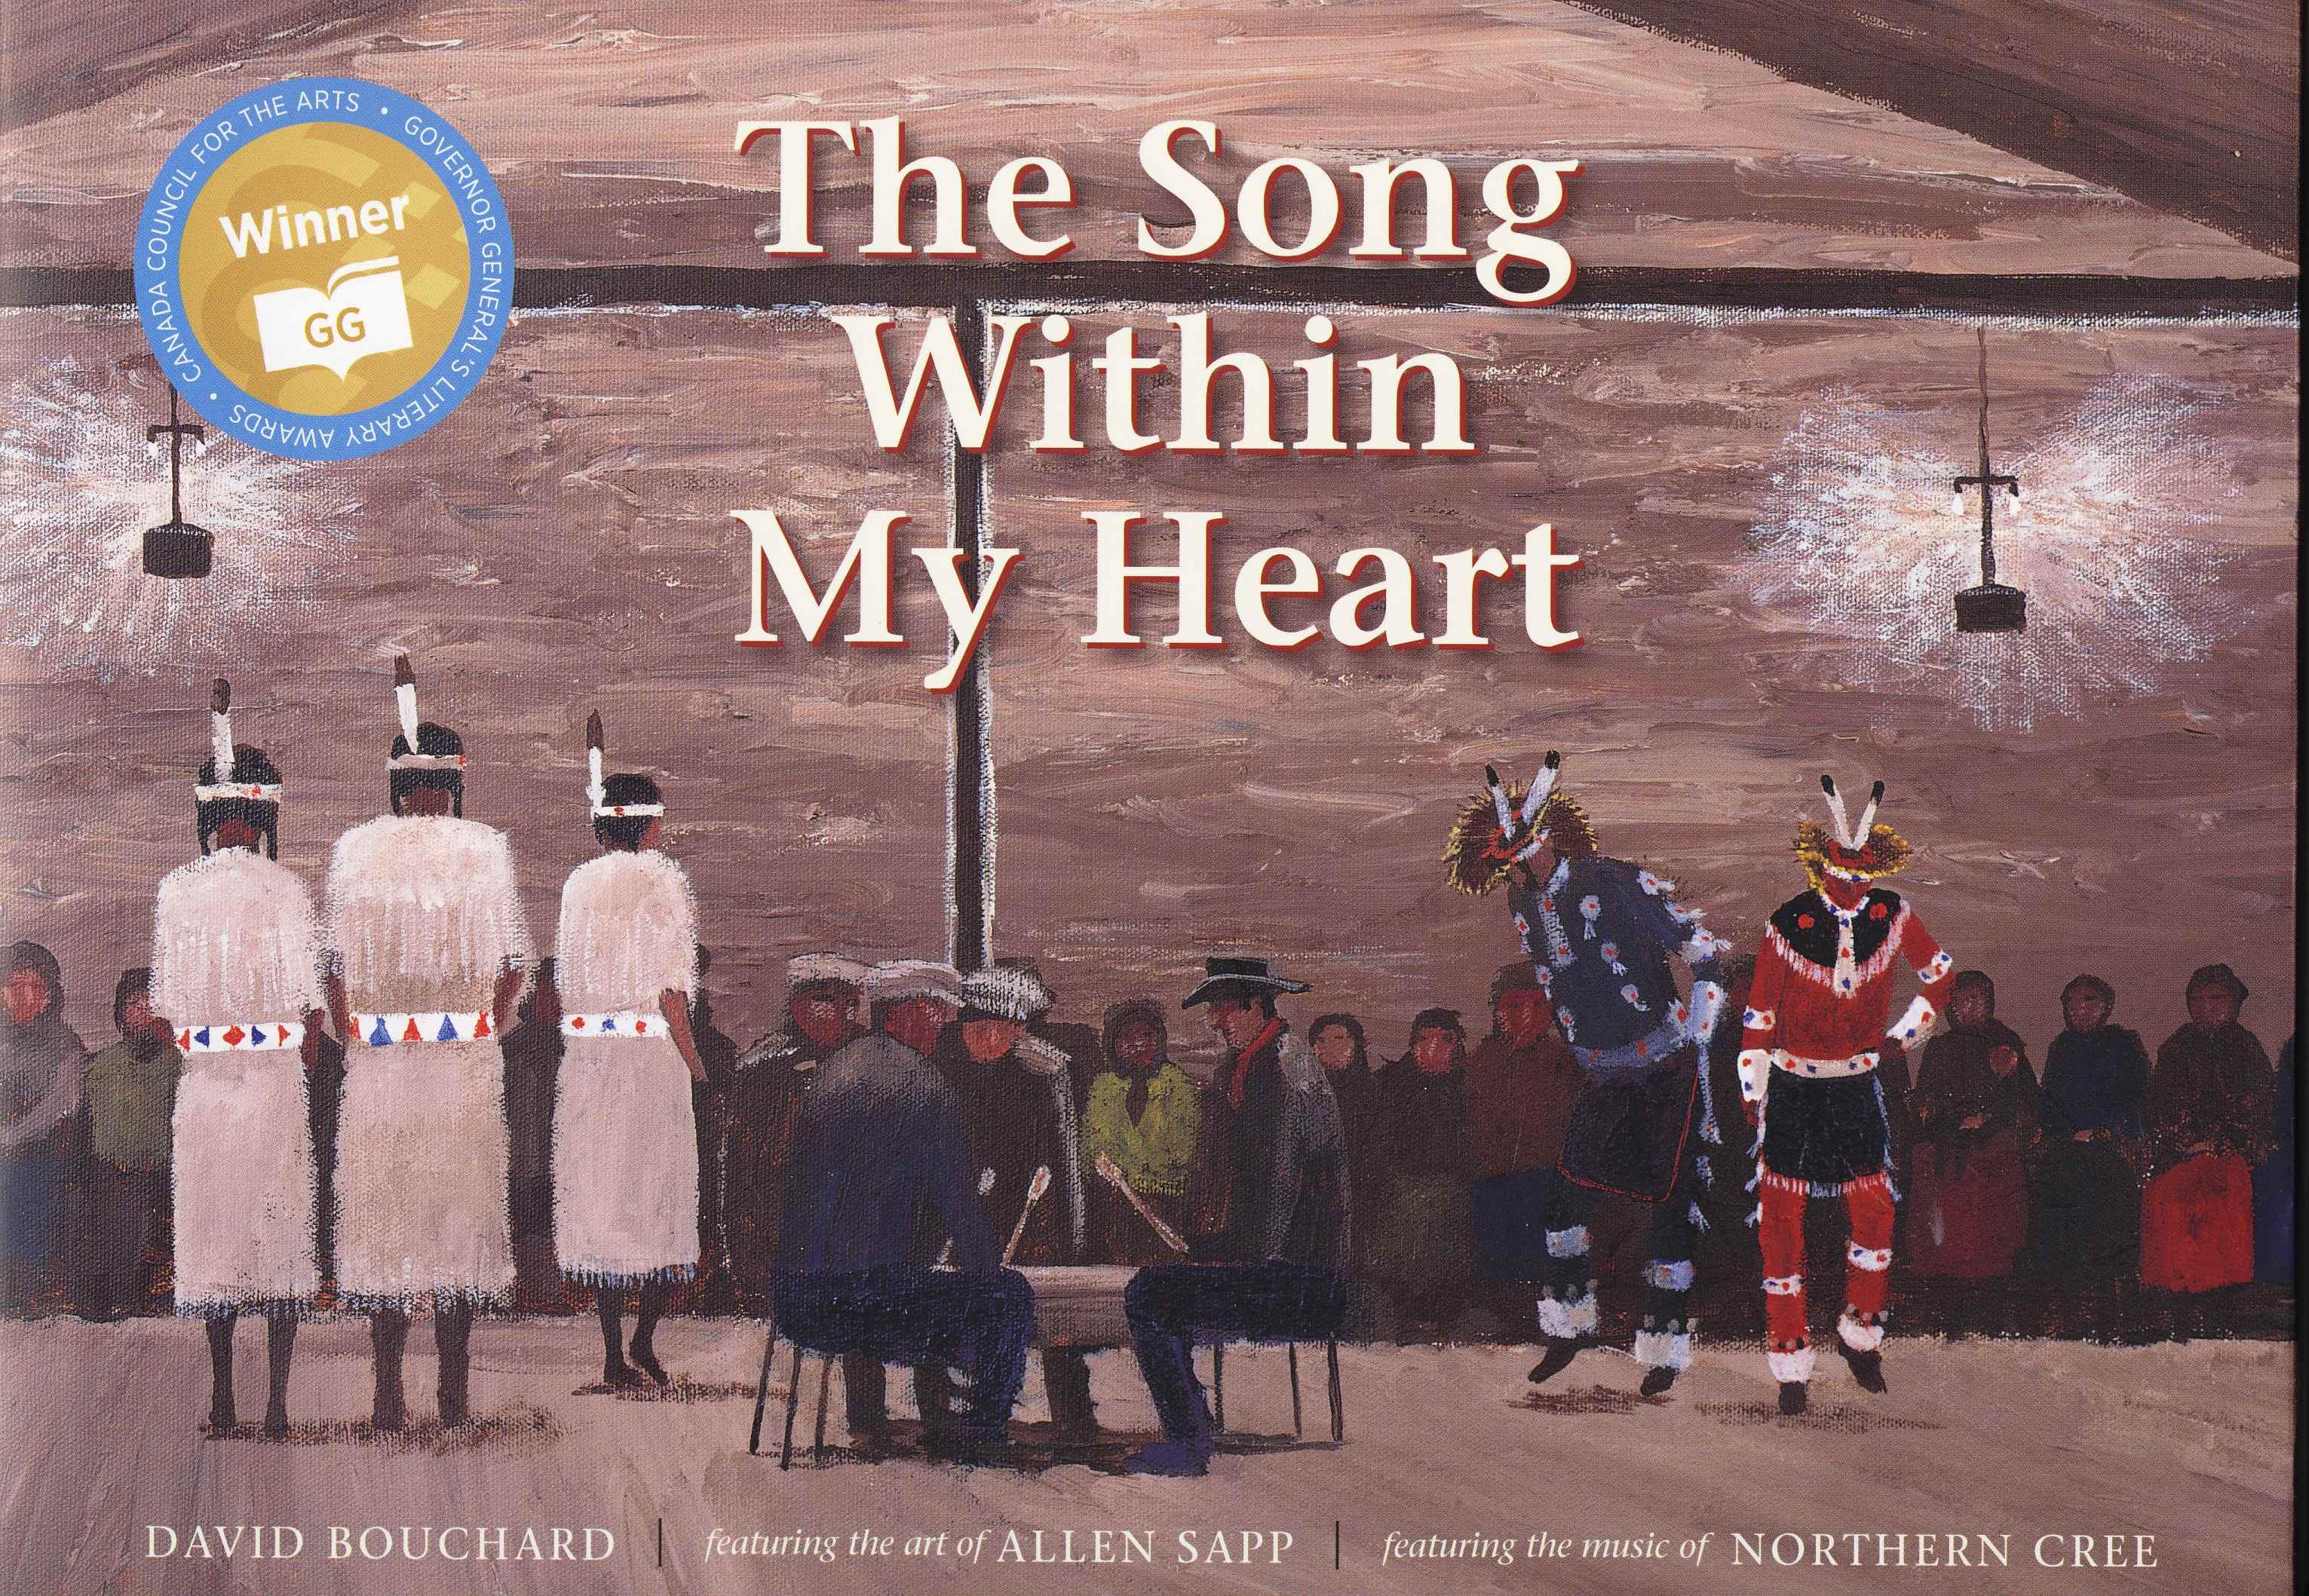 Must read indigenous childrens books list muskrat magazine must read indigenous childrens books list fandeluxe Gallery